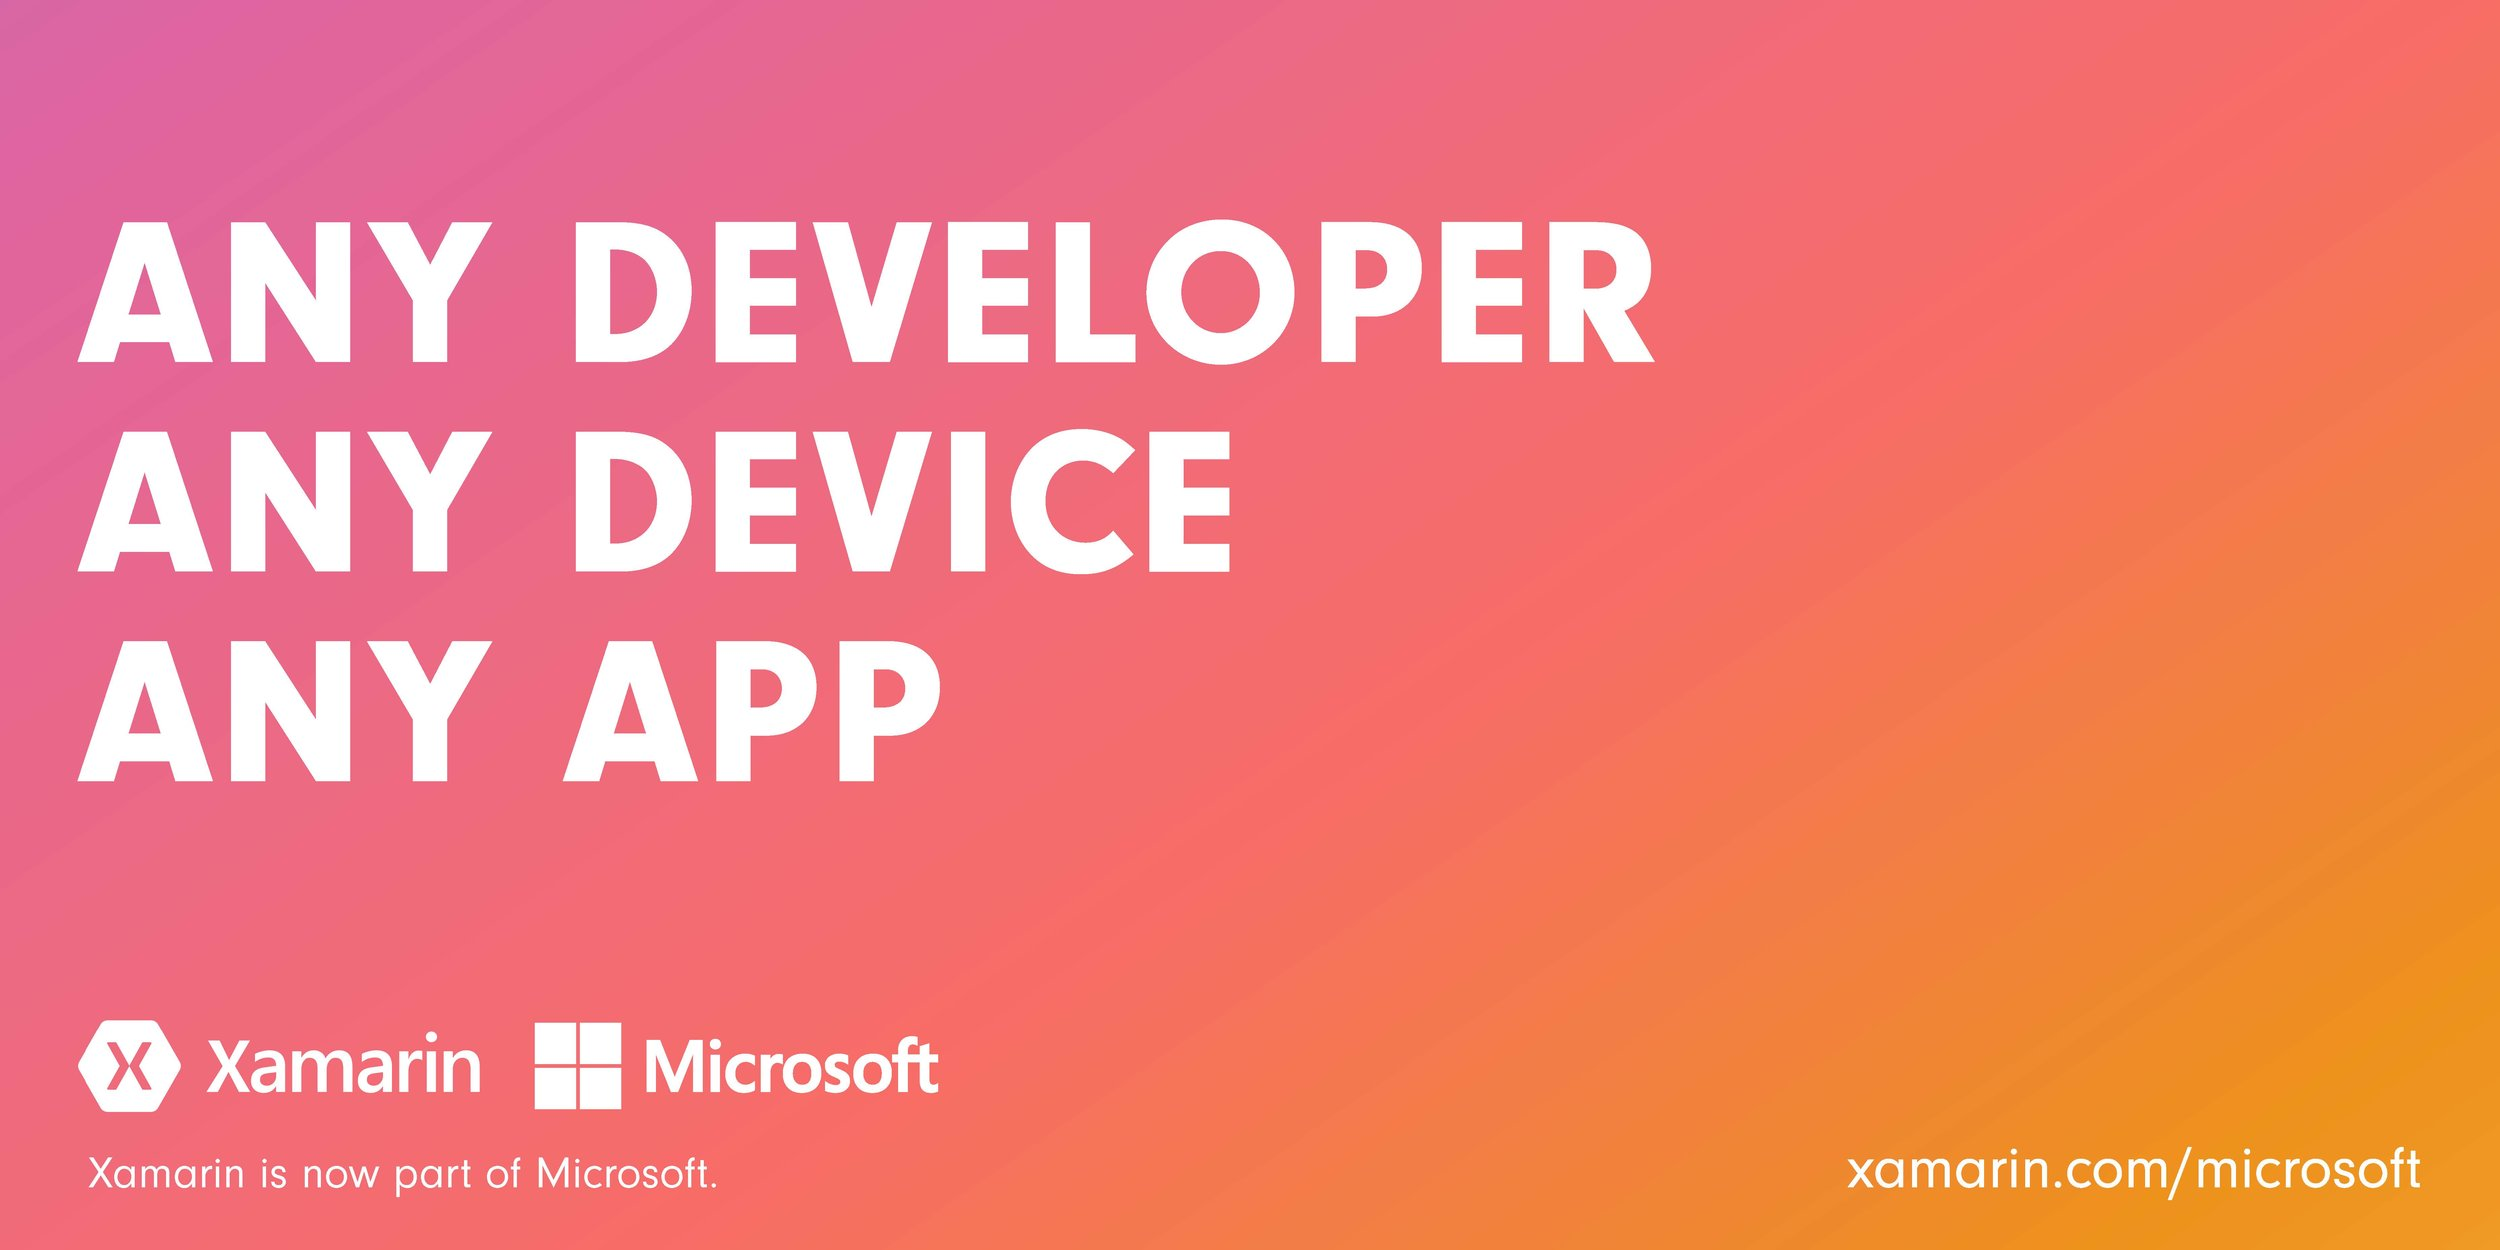 Xamarin + Microsoft Outdoor Campaign style 03_15_16_Page_2.jpg